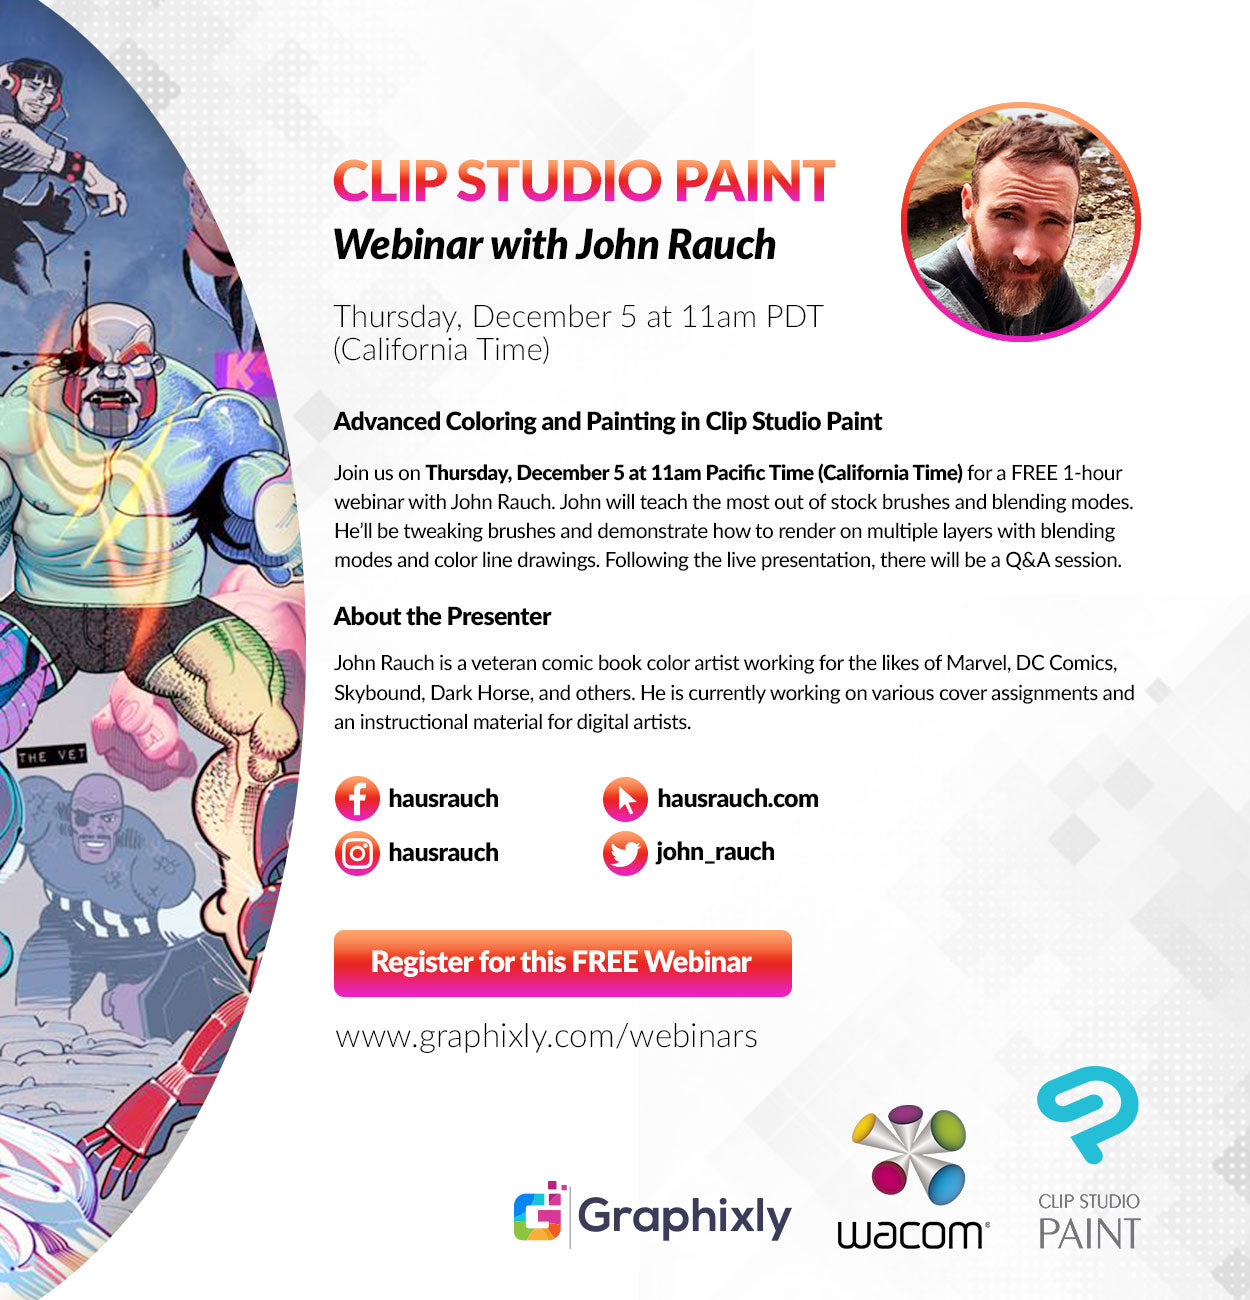 Webinar - Advanced Coloring and Painting in Clip Studio Paint